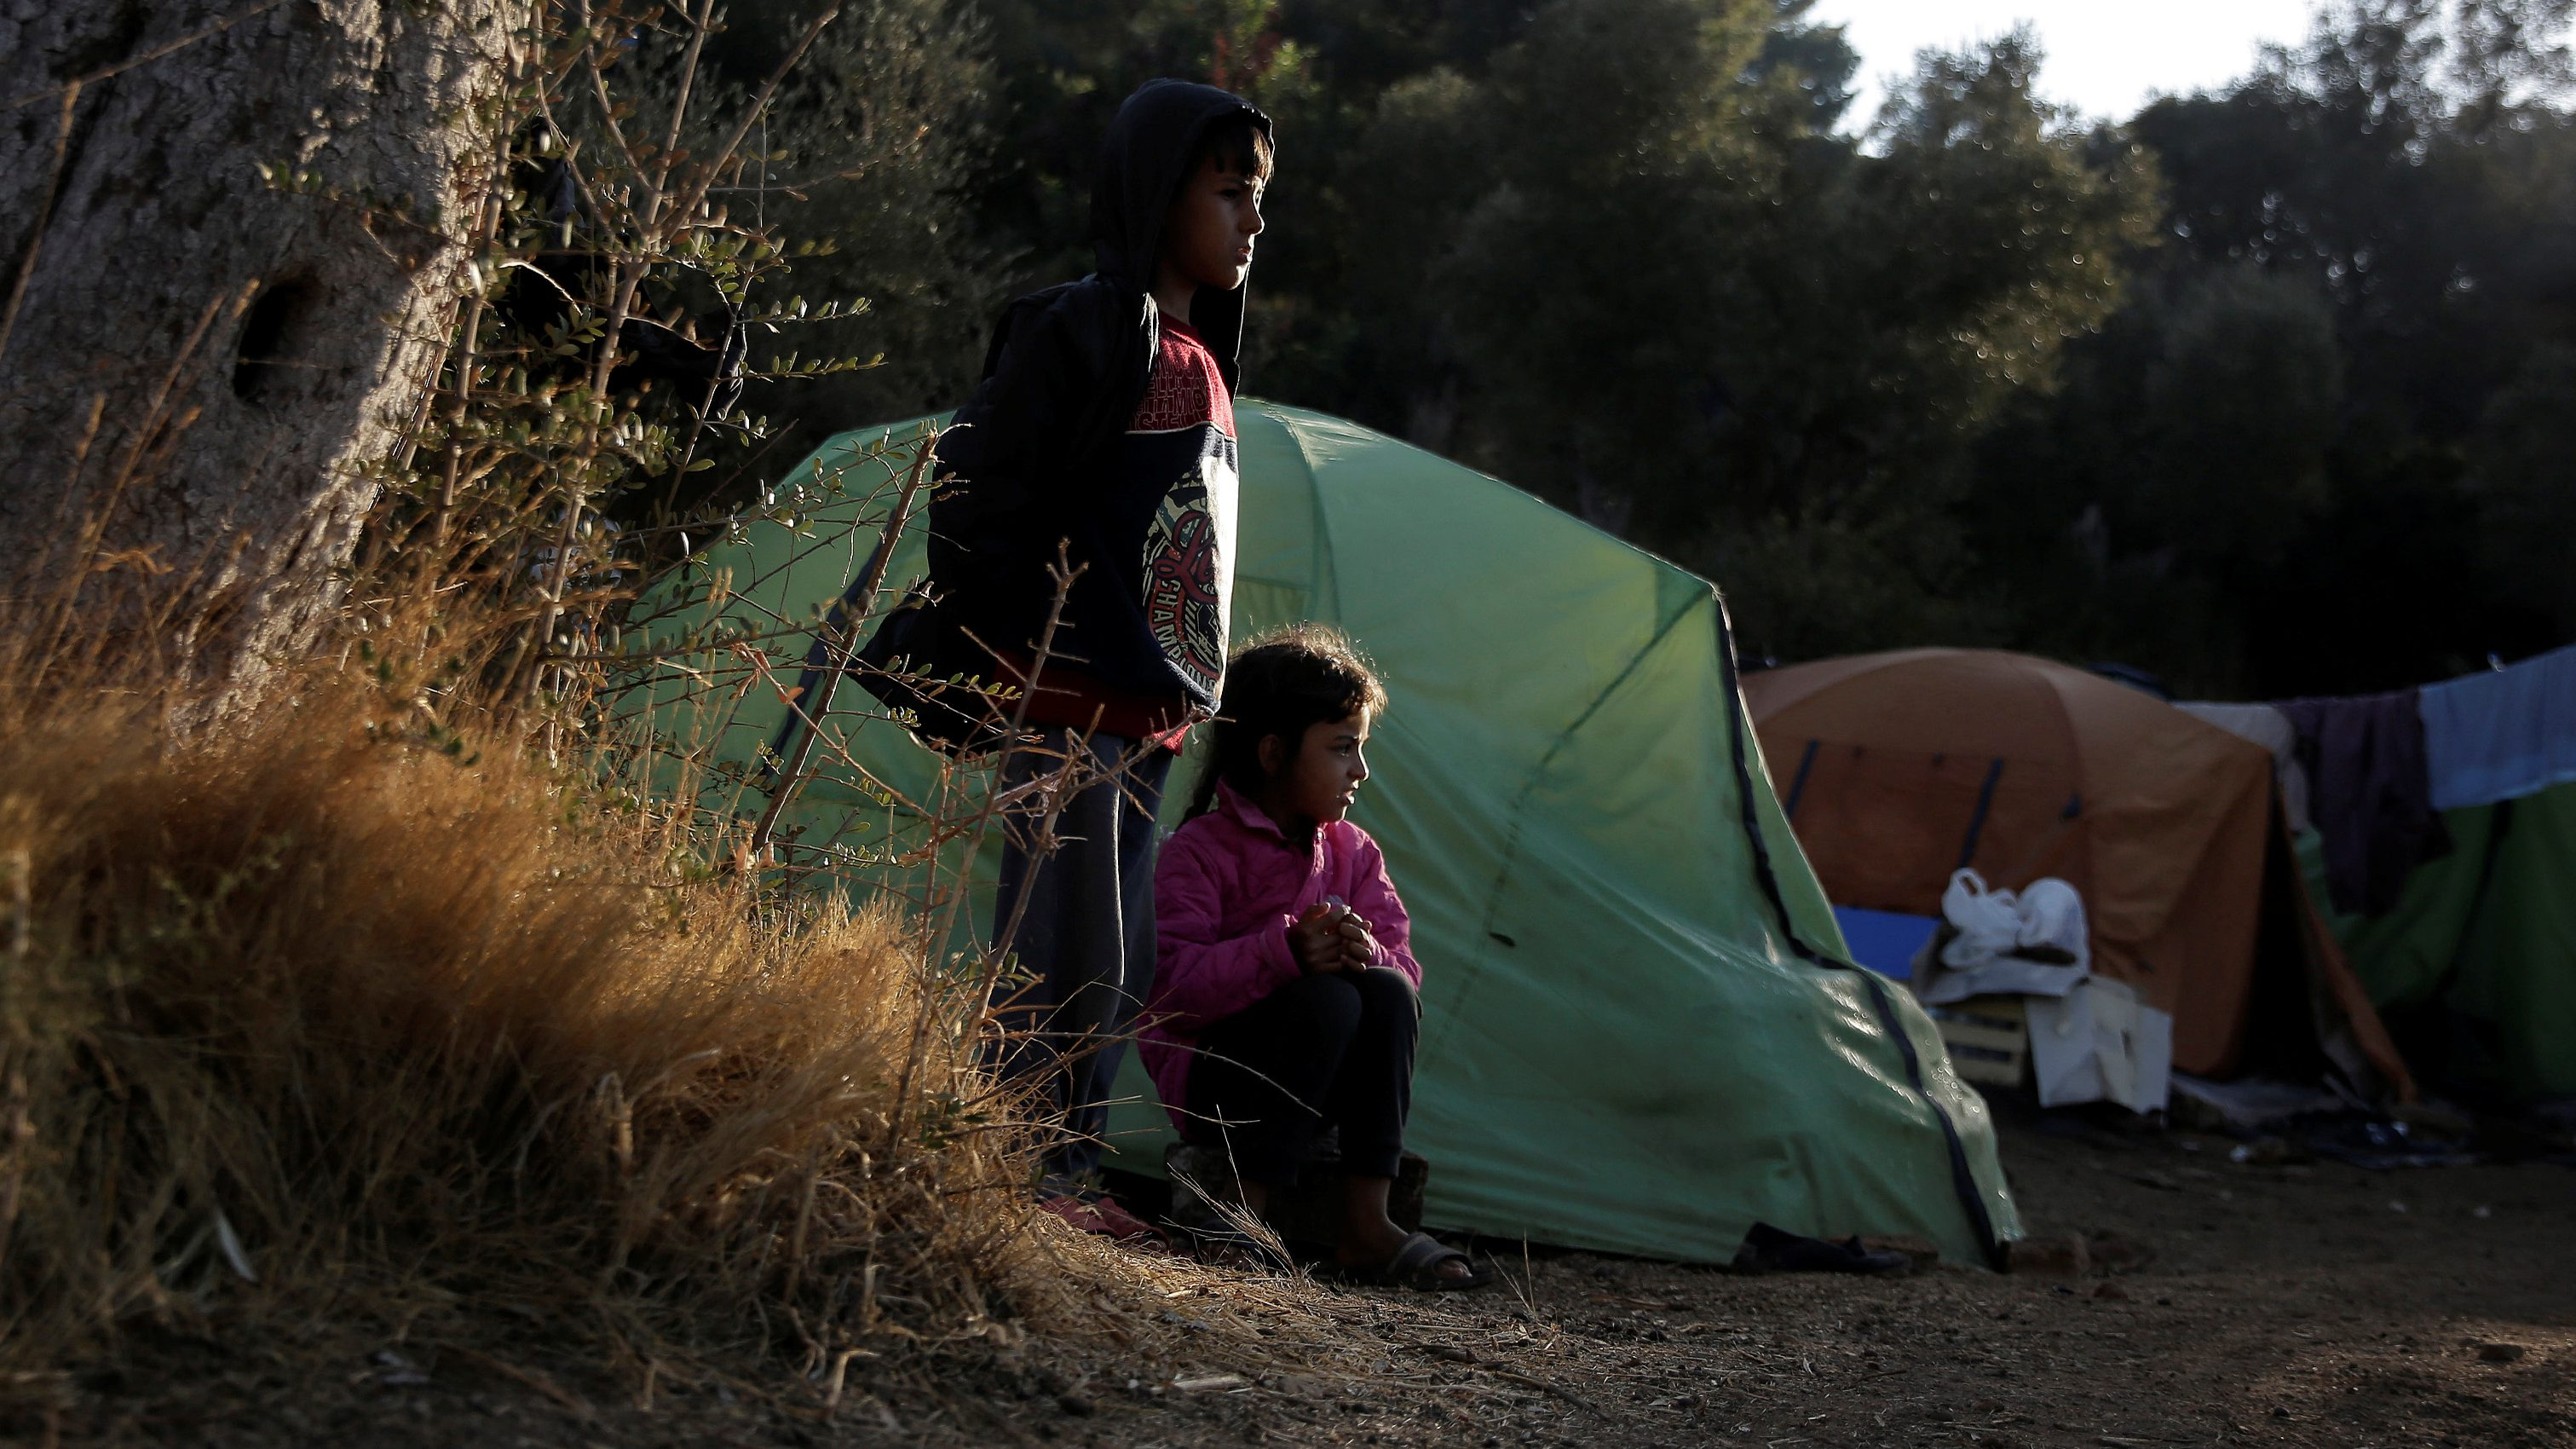 Children look on at a makeshift camp on the Greek island of Samos